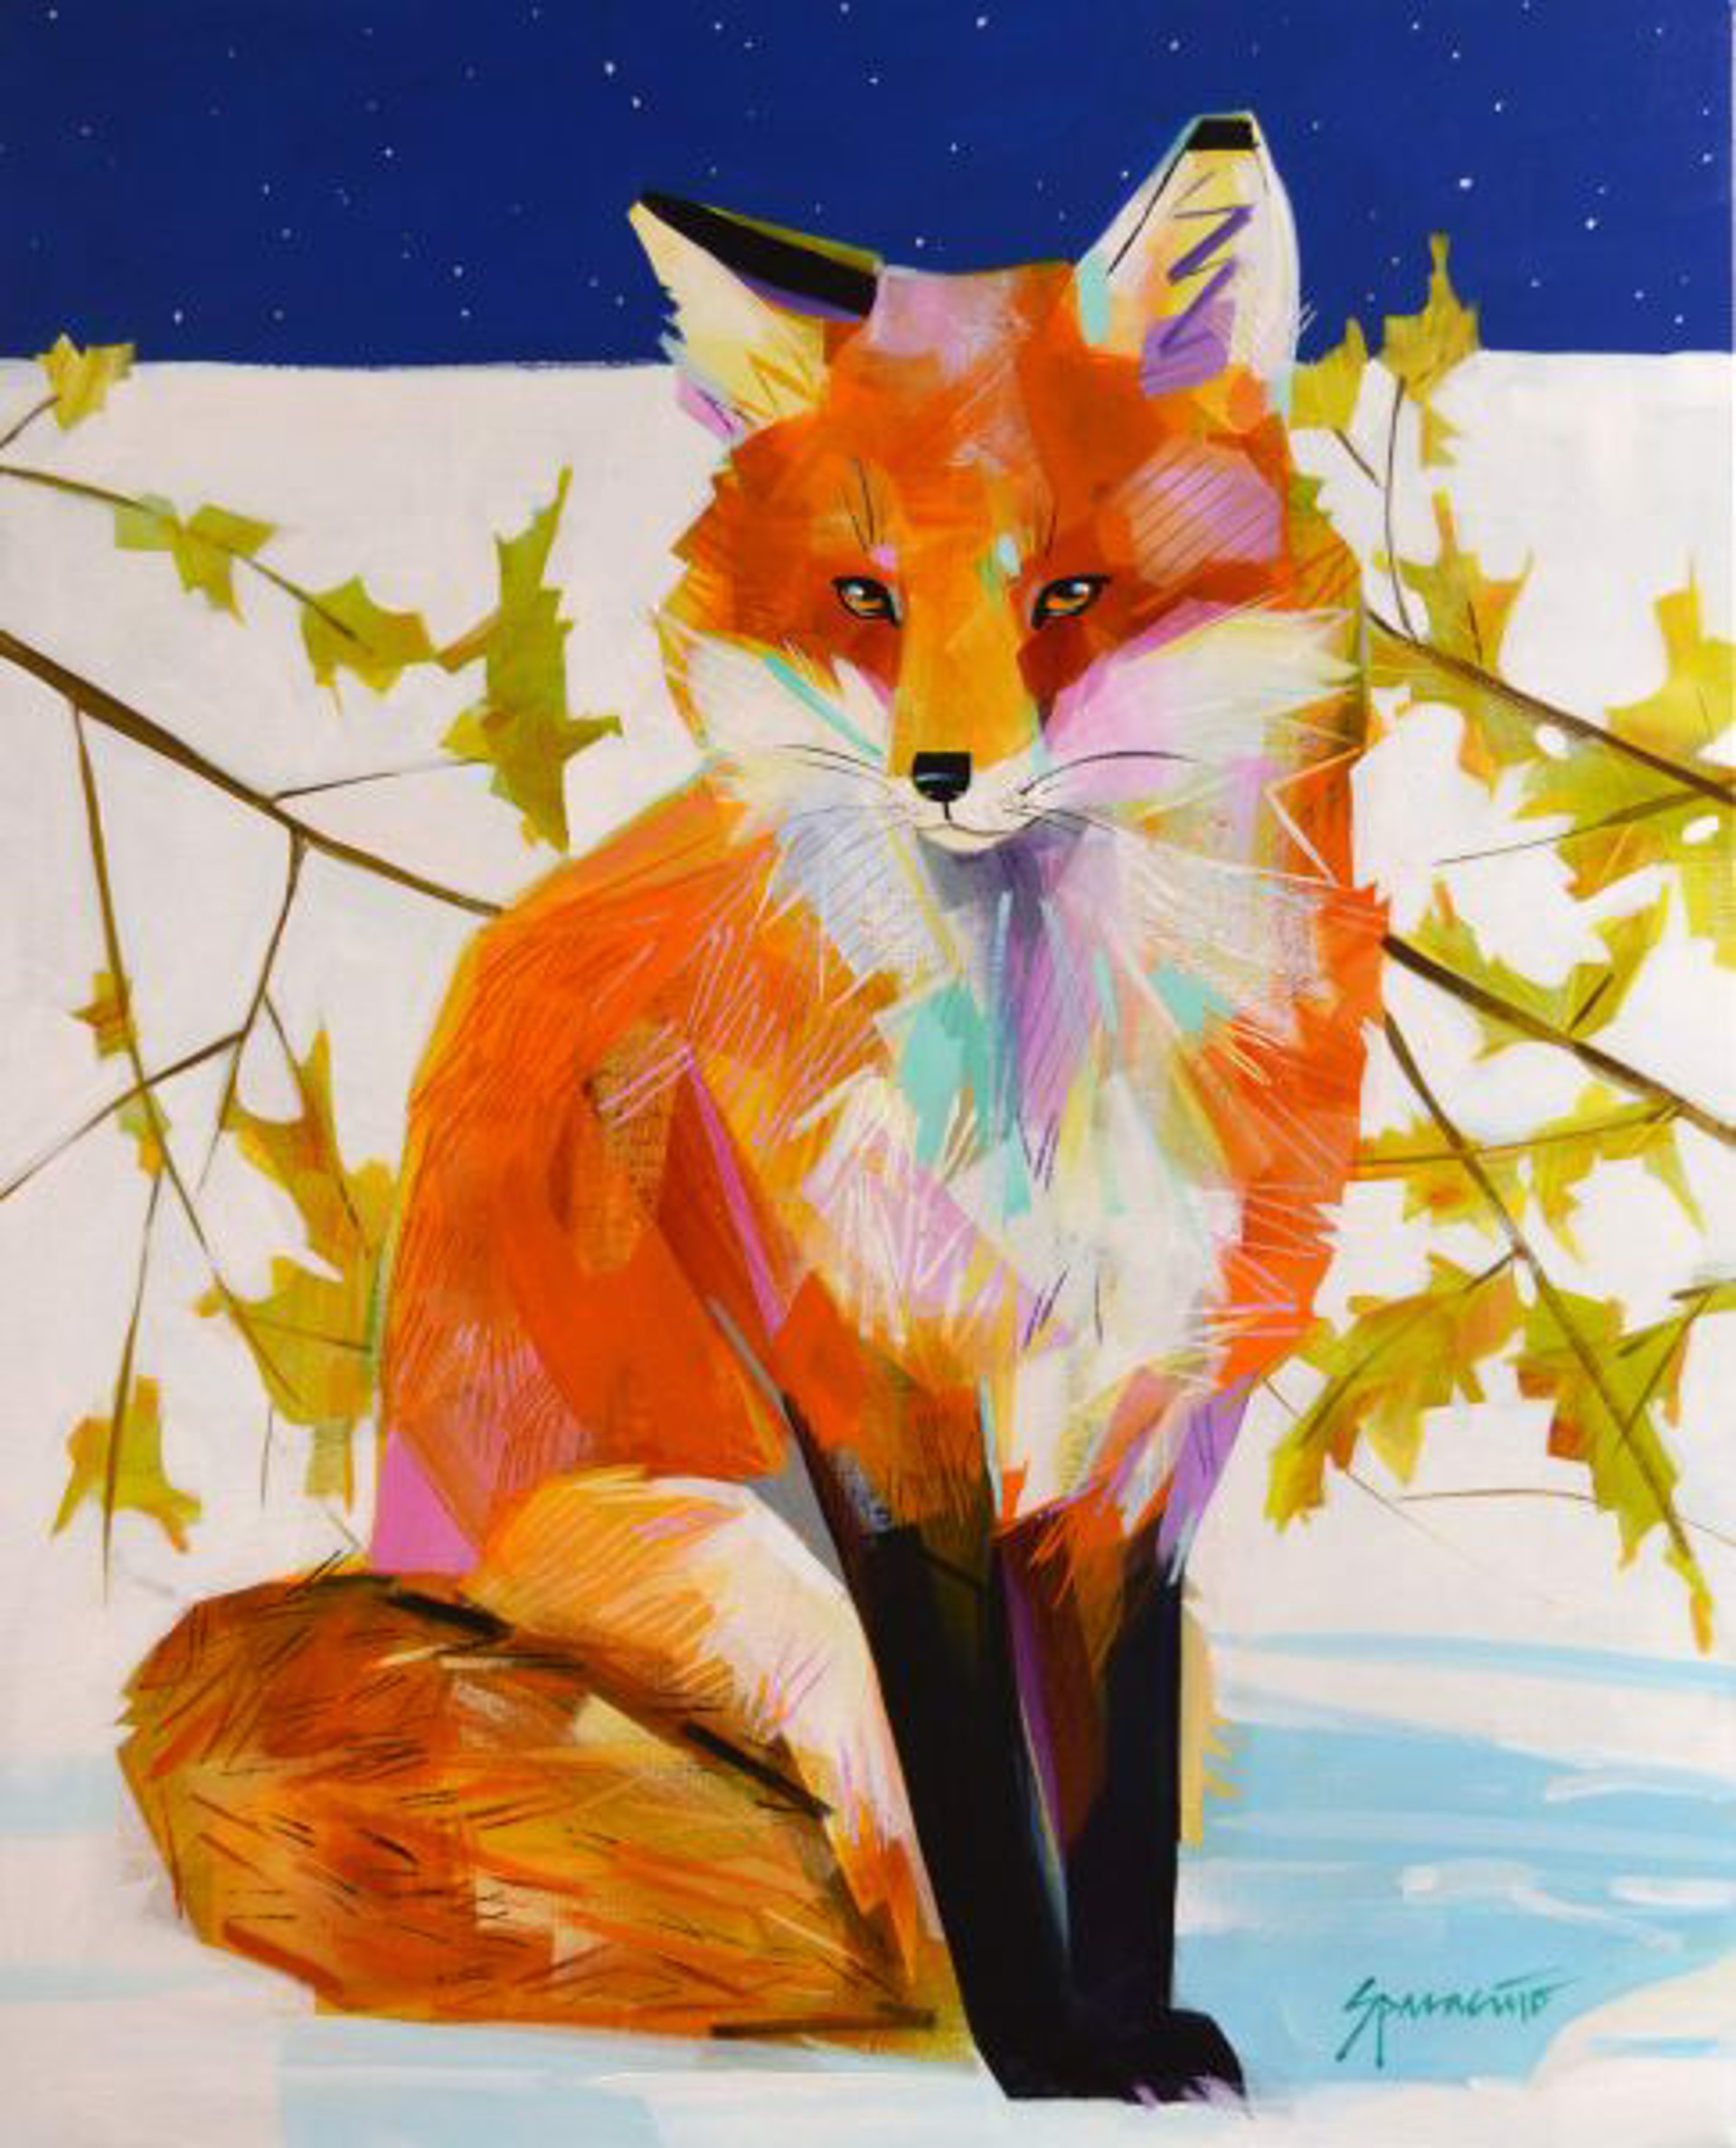 Fox on Winter Solstice by JENNIFER SPARACINO